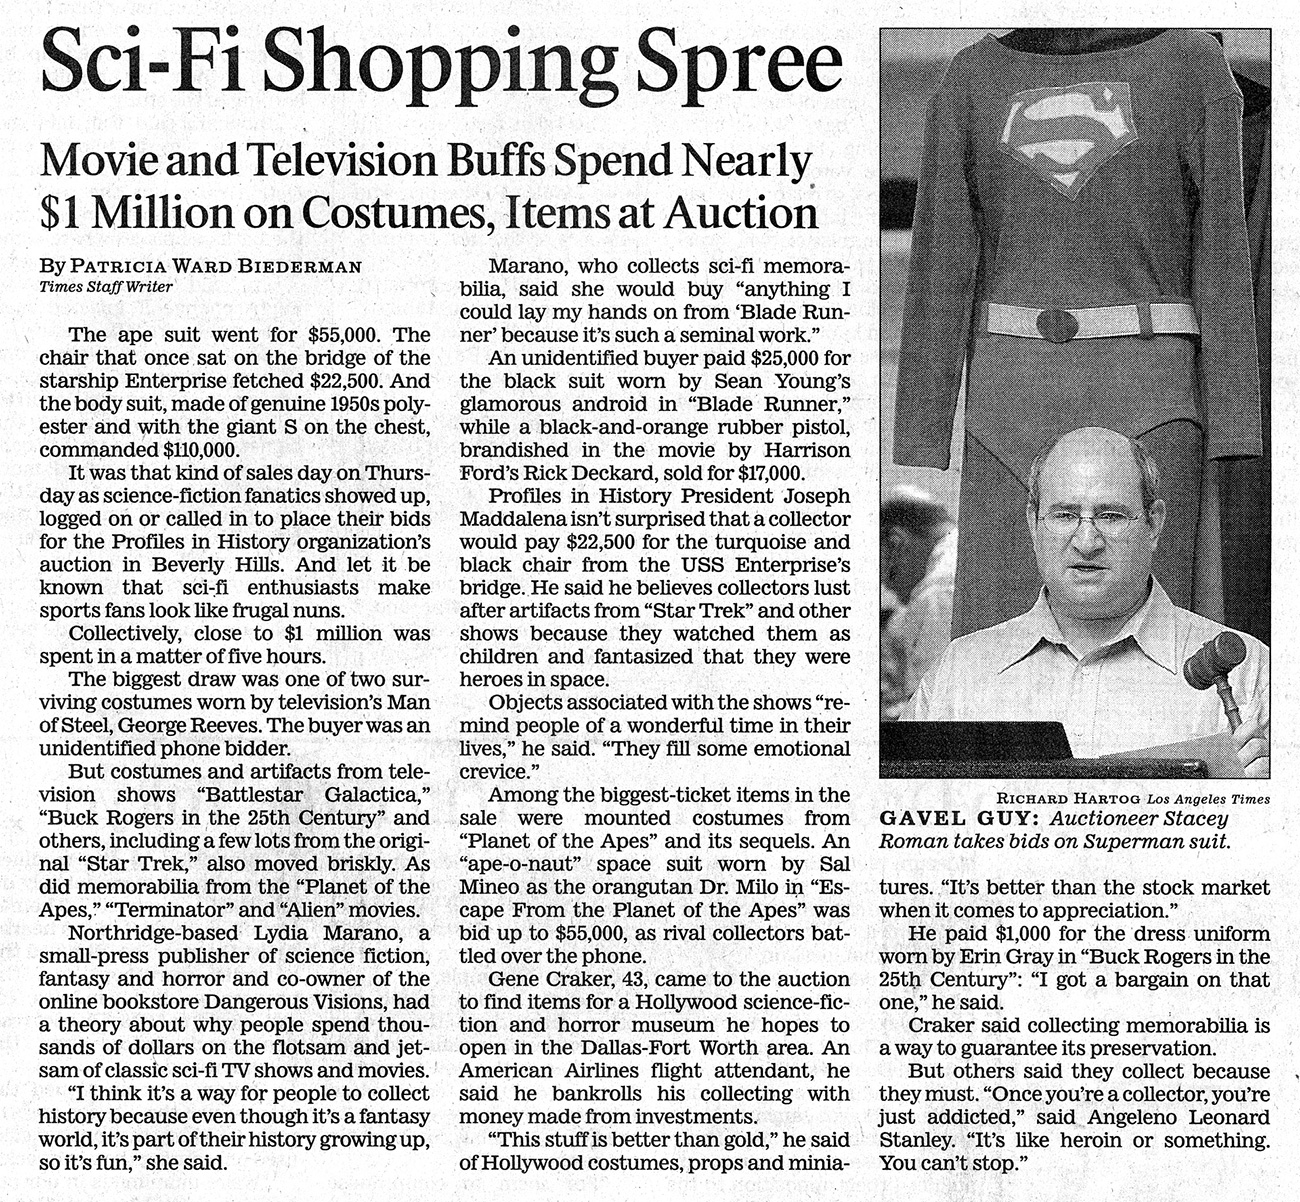 times auction, the sci-fi shopping spree article, movie and television buffs spend nearly $1 million on costumes item at auction